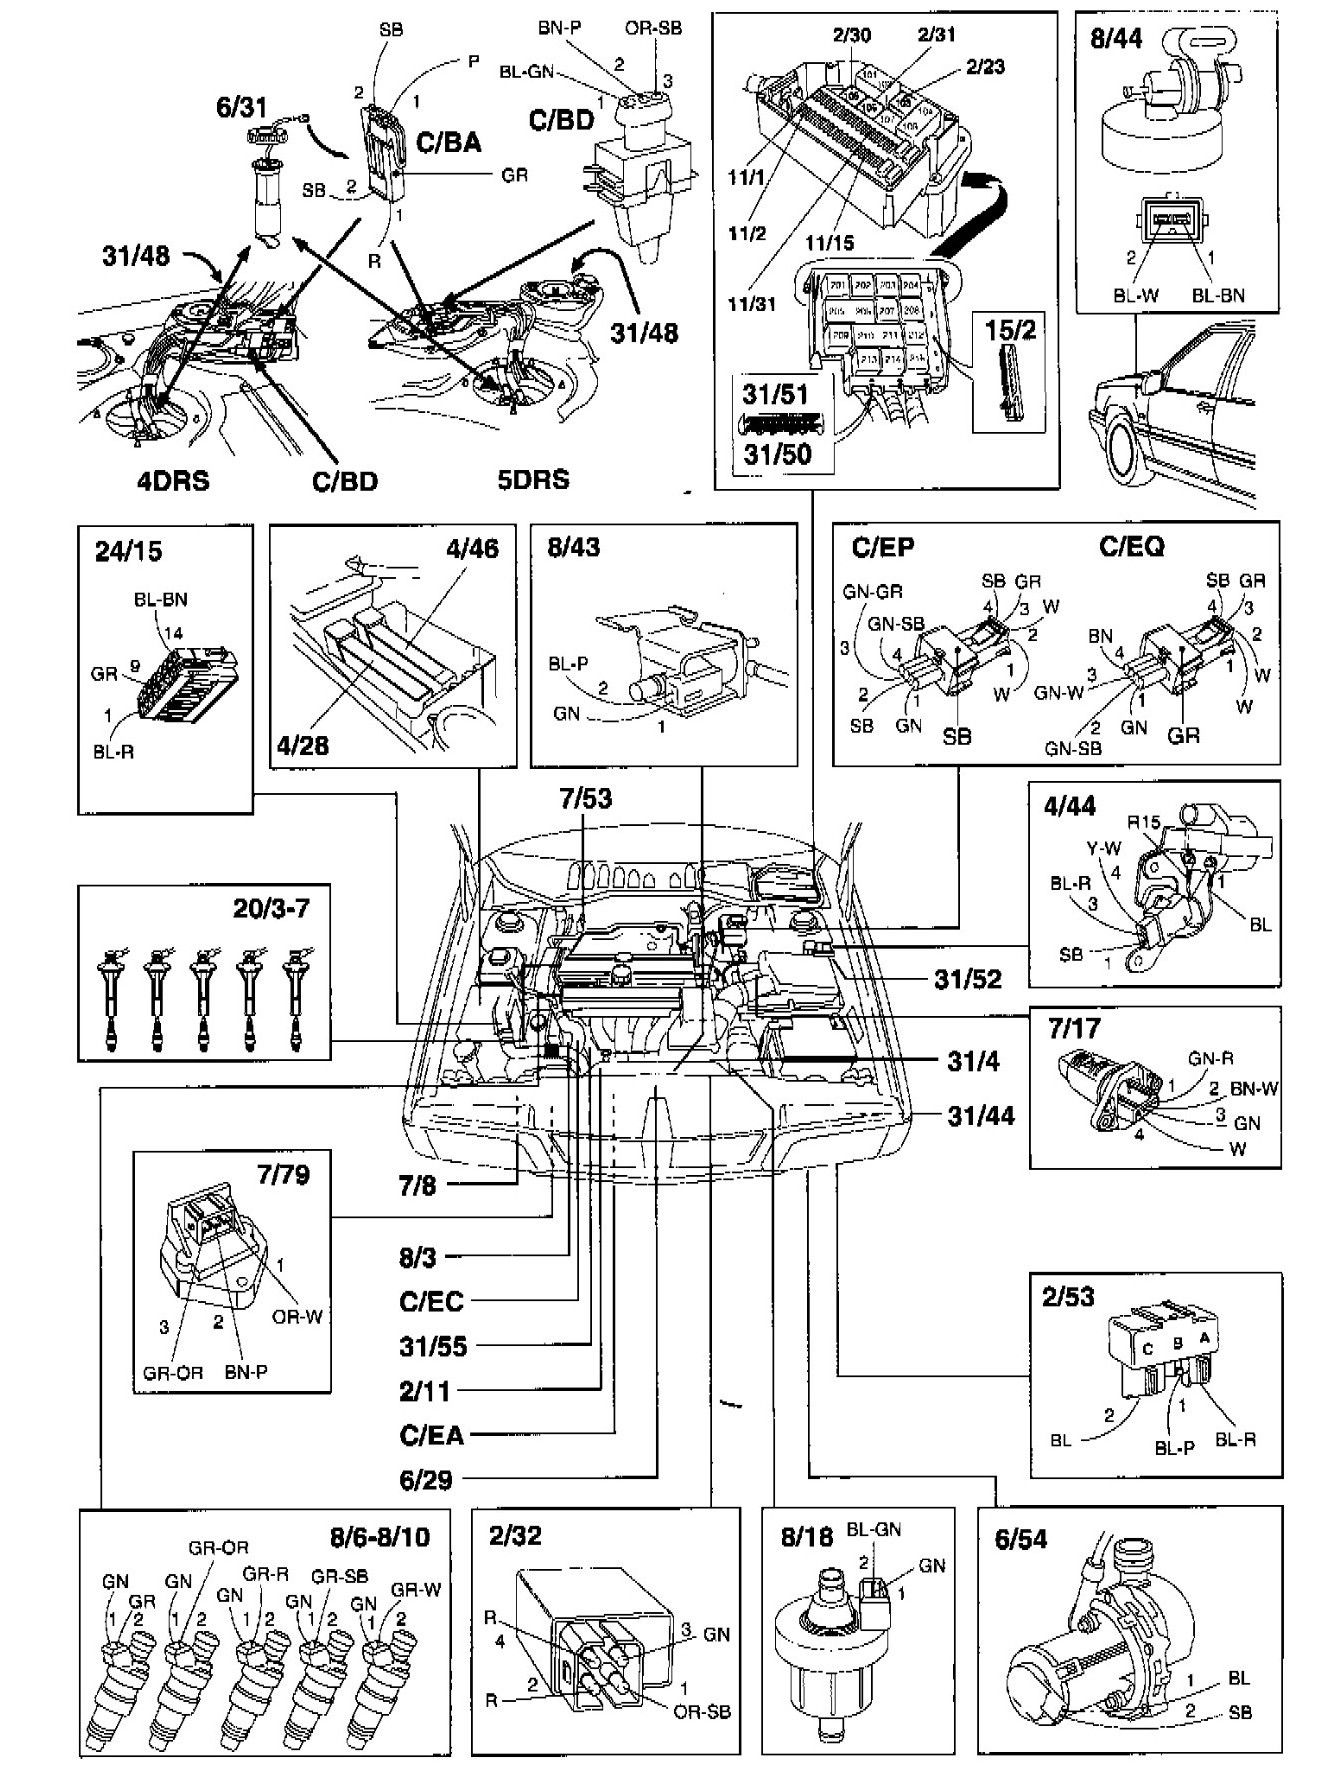 volvo truck engine diagram | meet-ministe wiring diagram ran -  meet-ministe.rolltec-automotive.eu  rolltec-automotive.eu